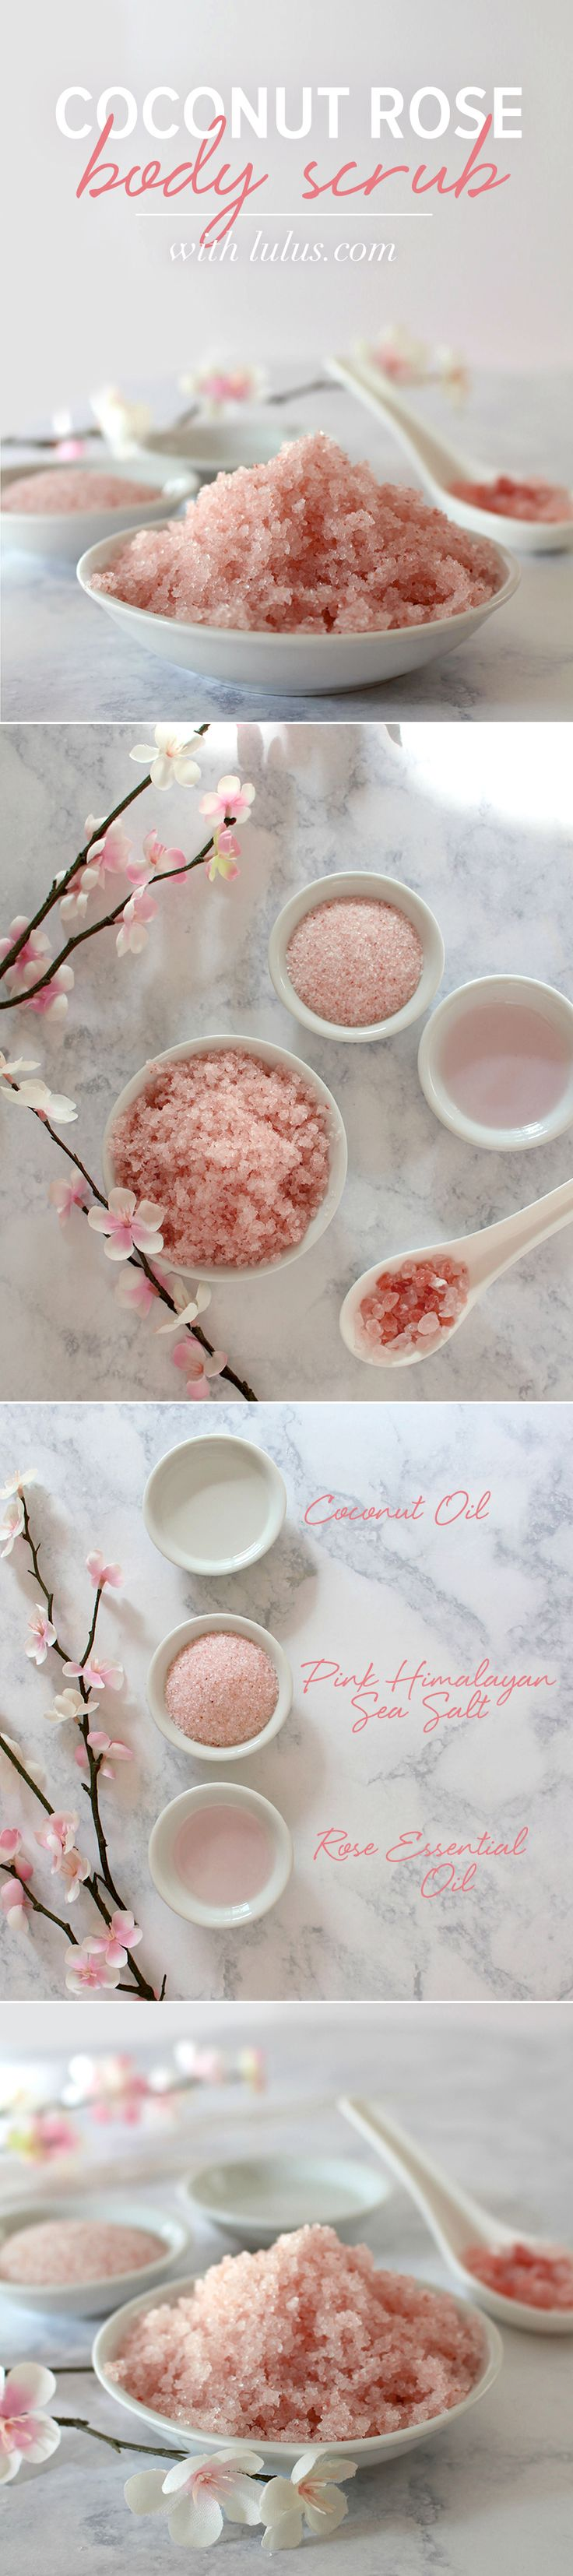 Coconut Rose Body Scrub